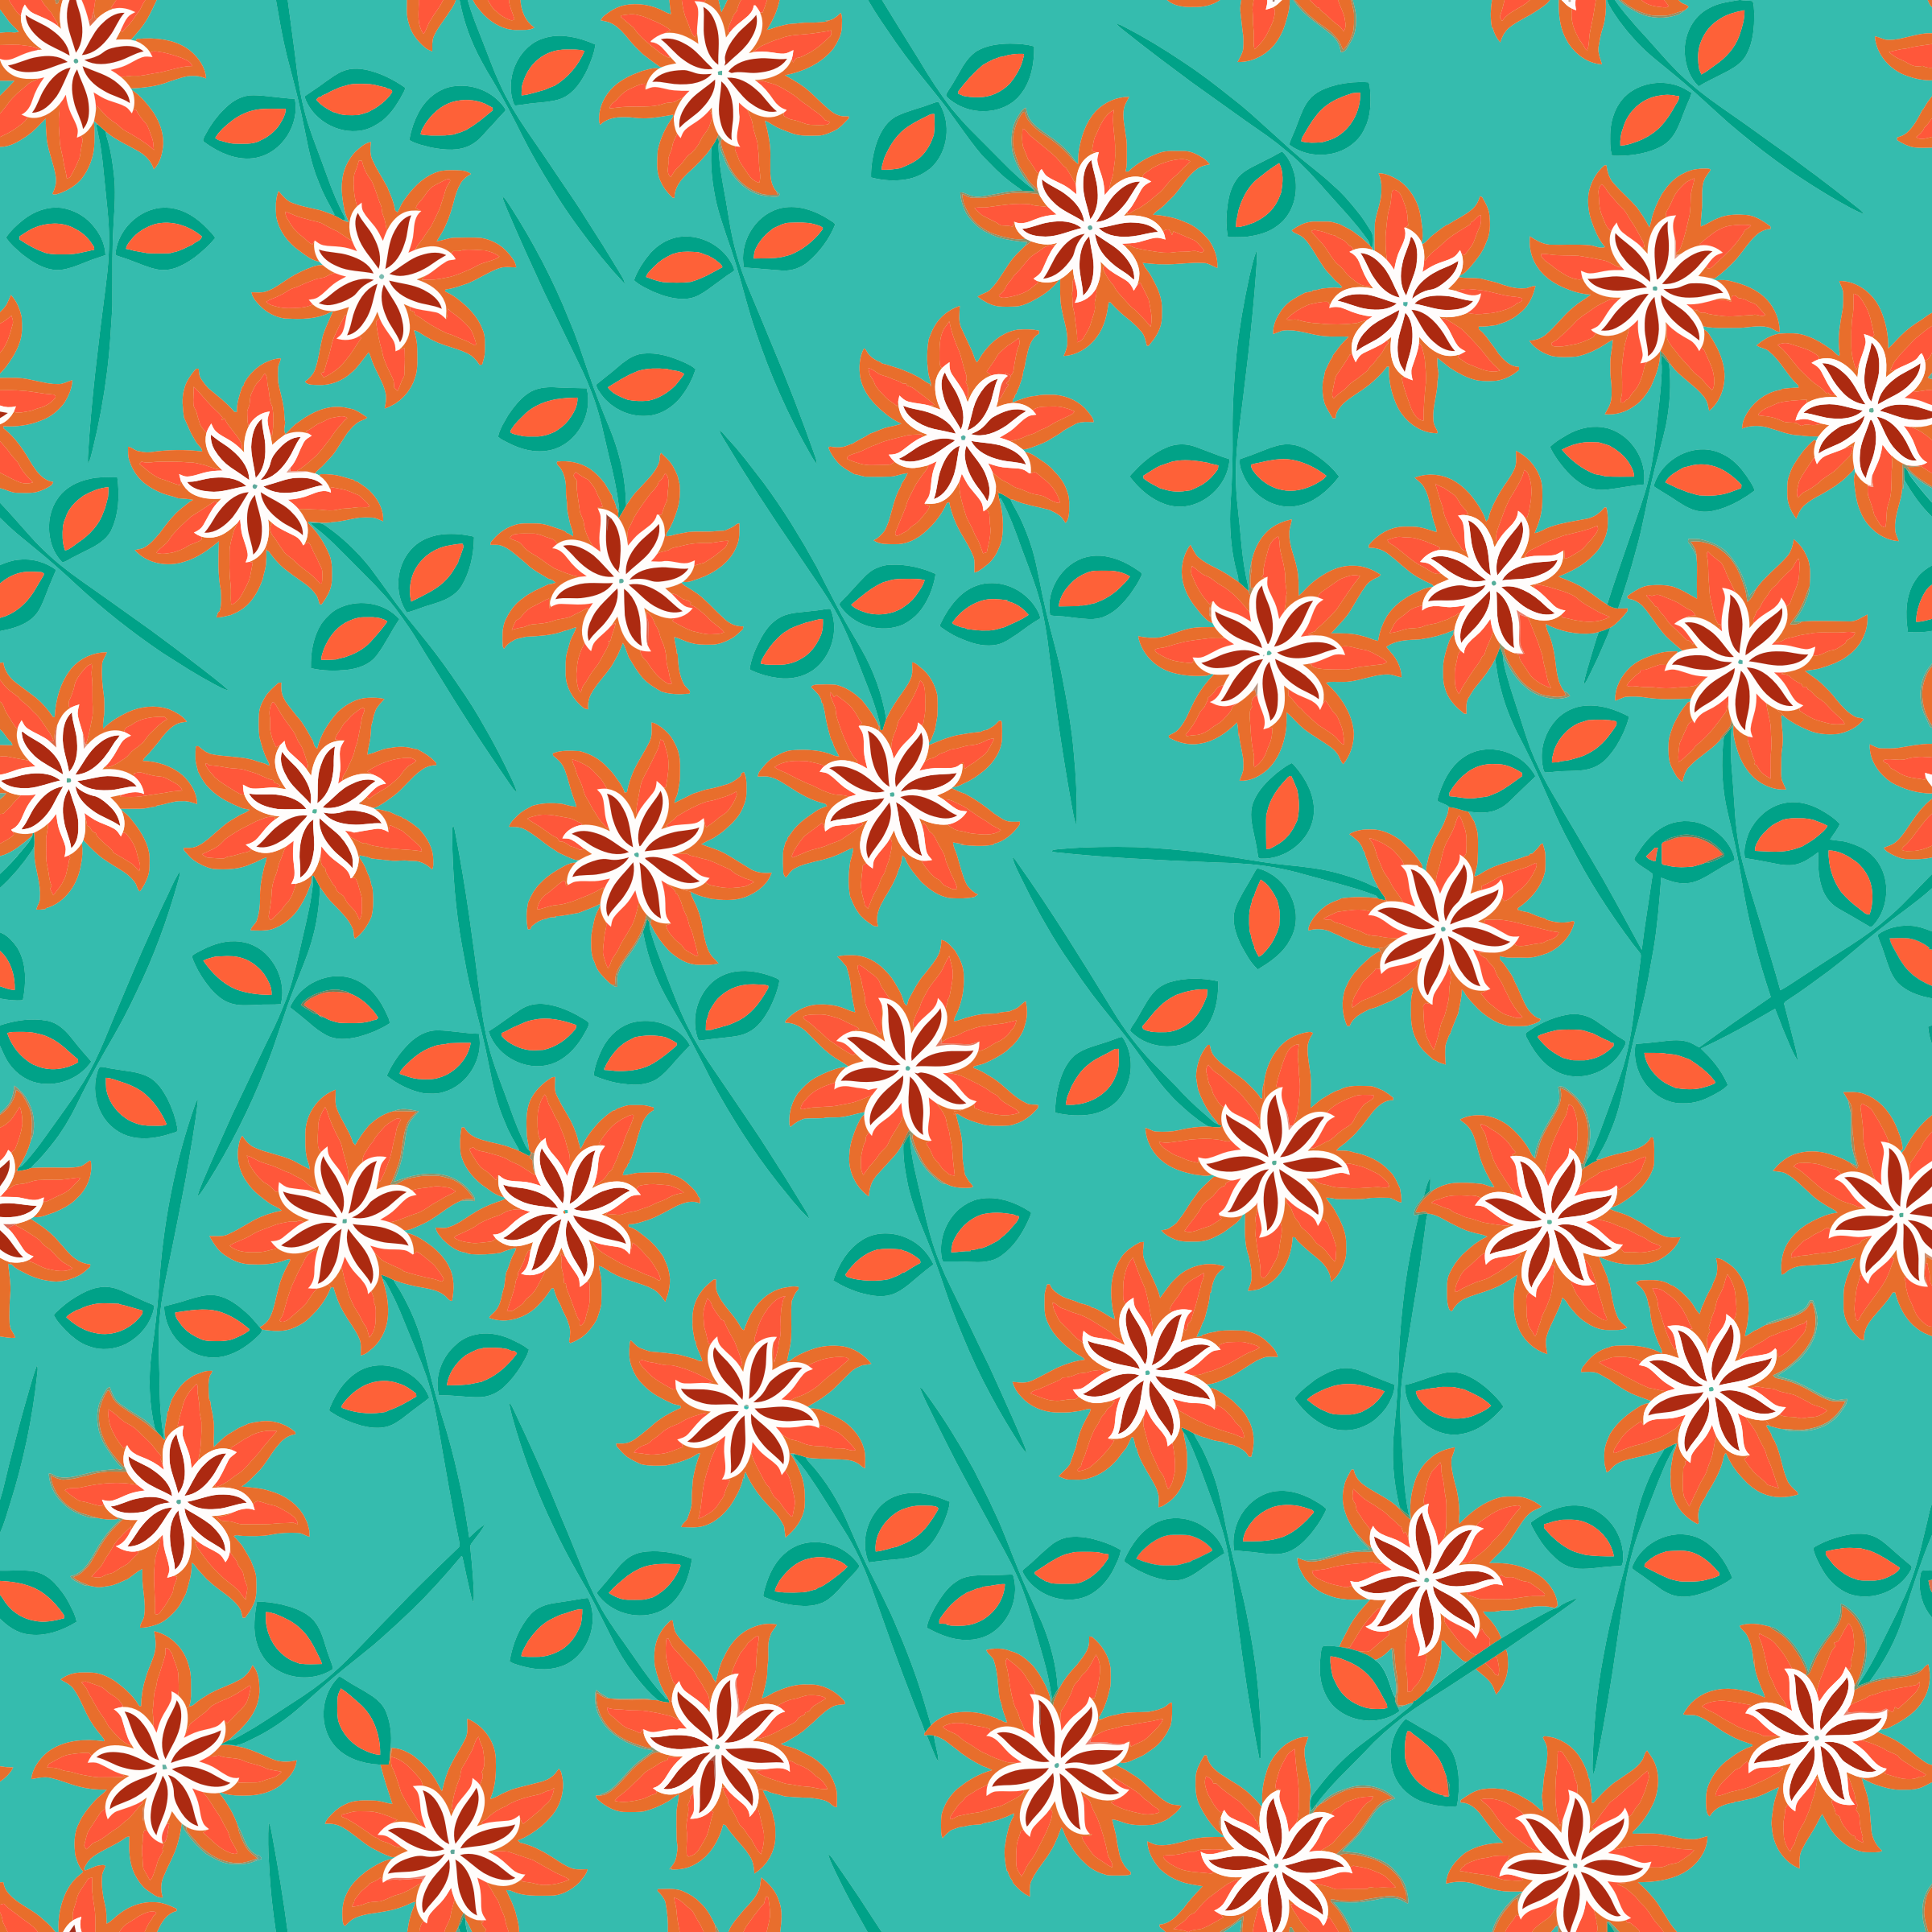 Floral Seamless Pattern 8 by GDJ